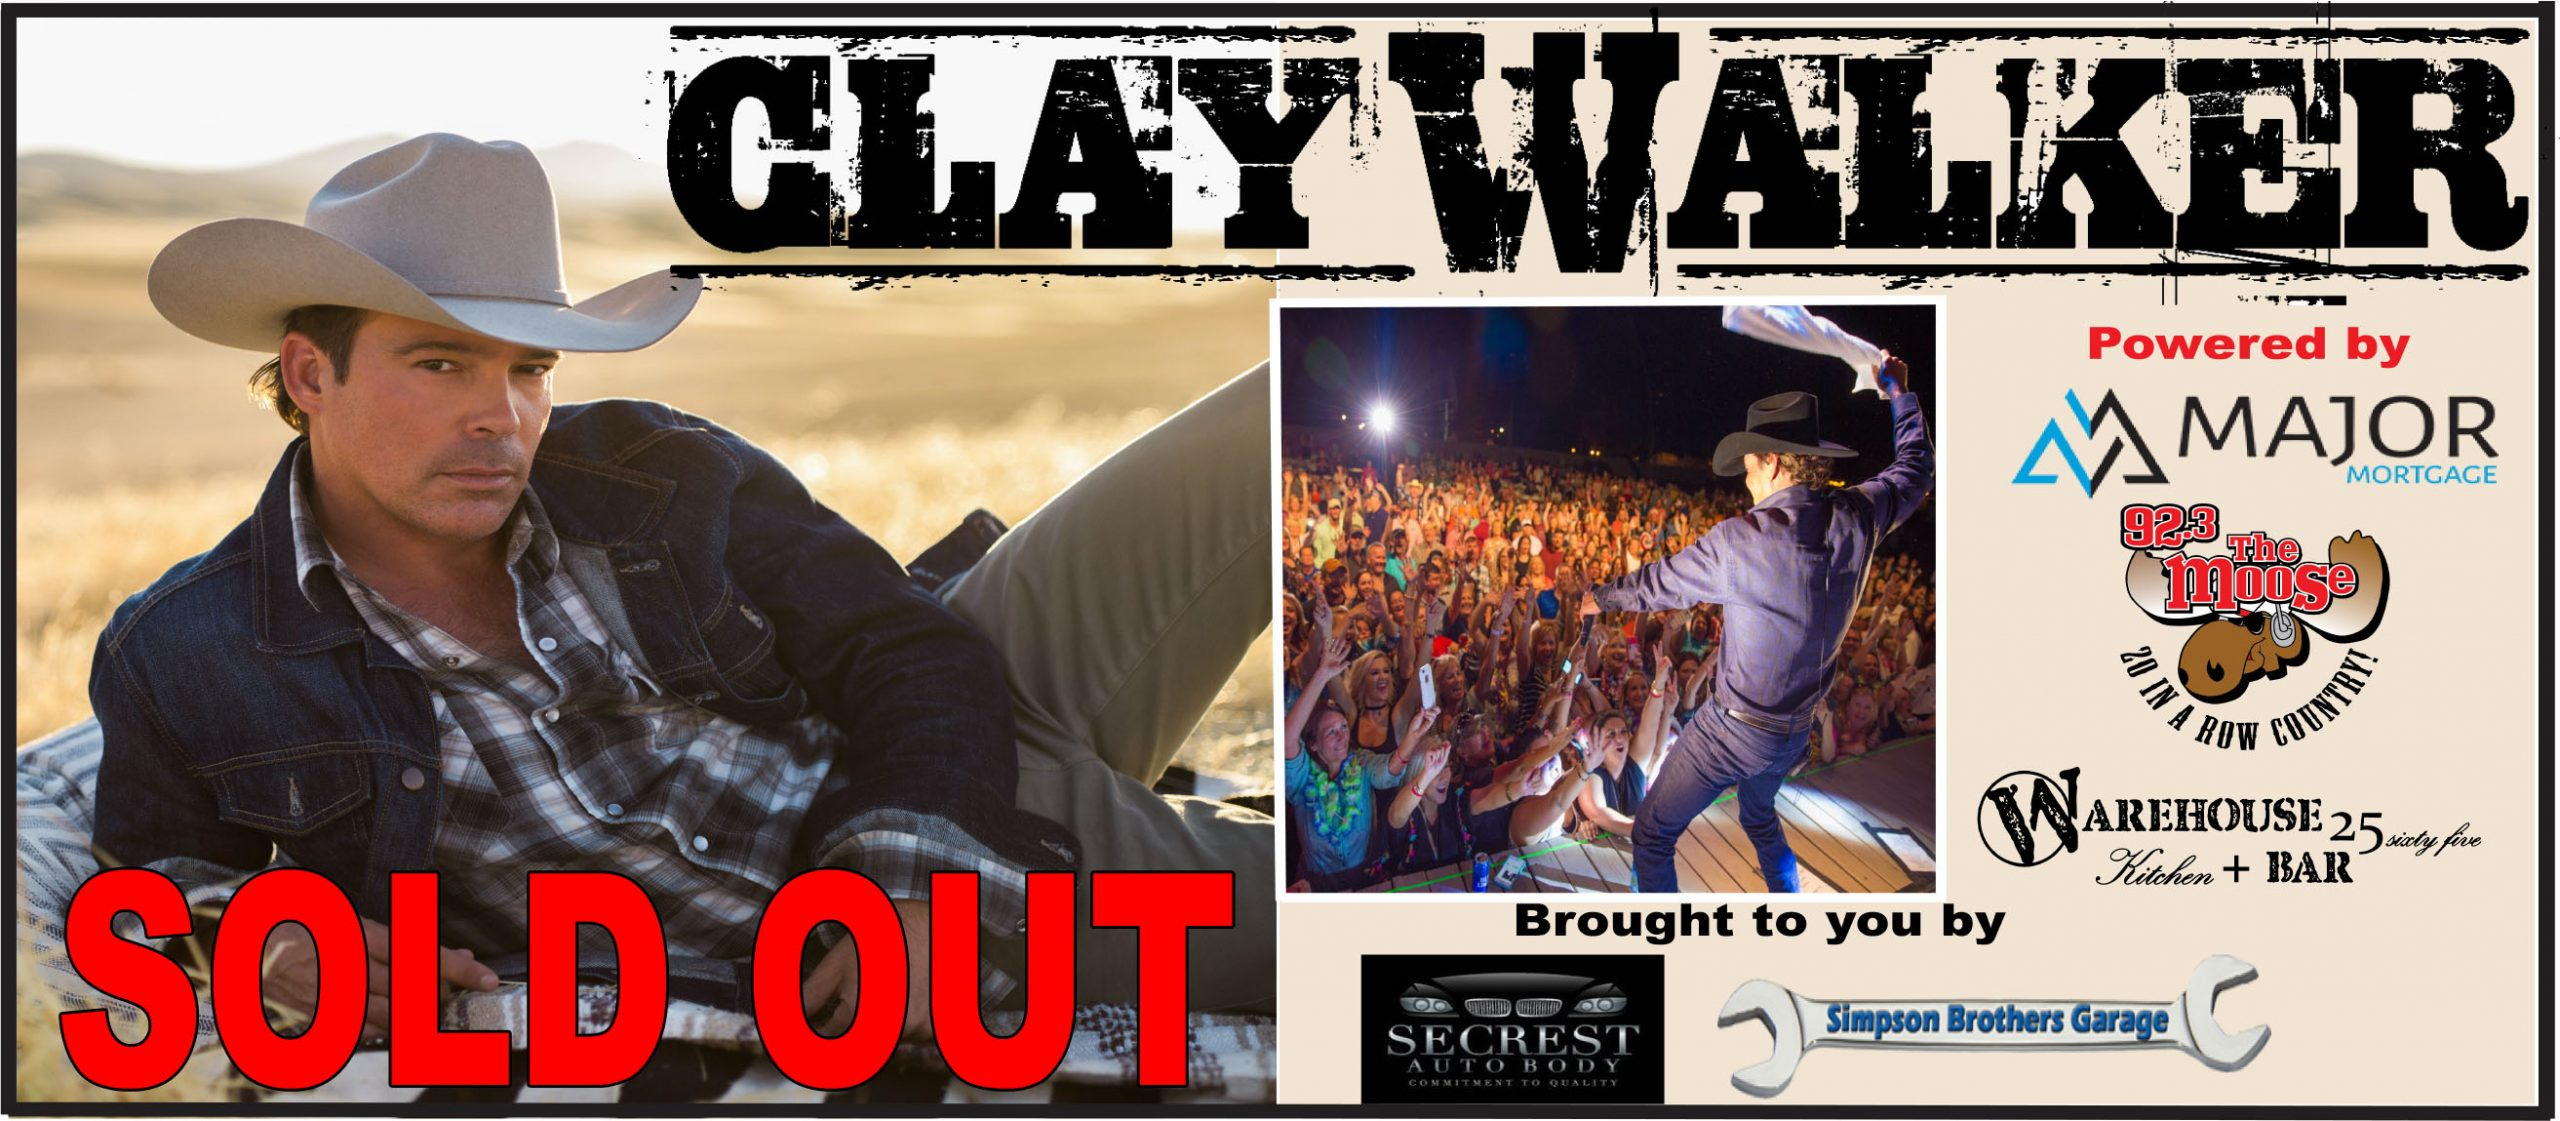 Feature: https://www.eventbrite.com/e/clay-walker-tickets-53318454934